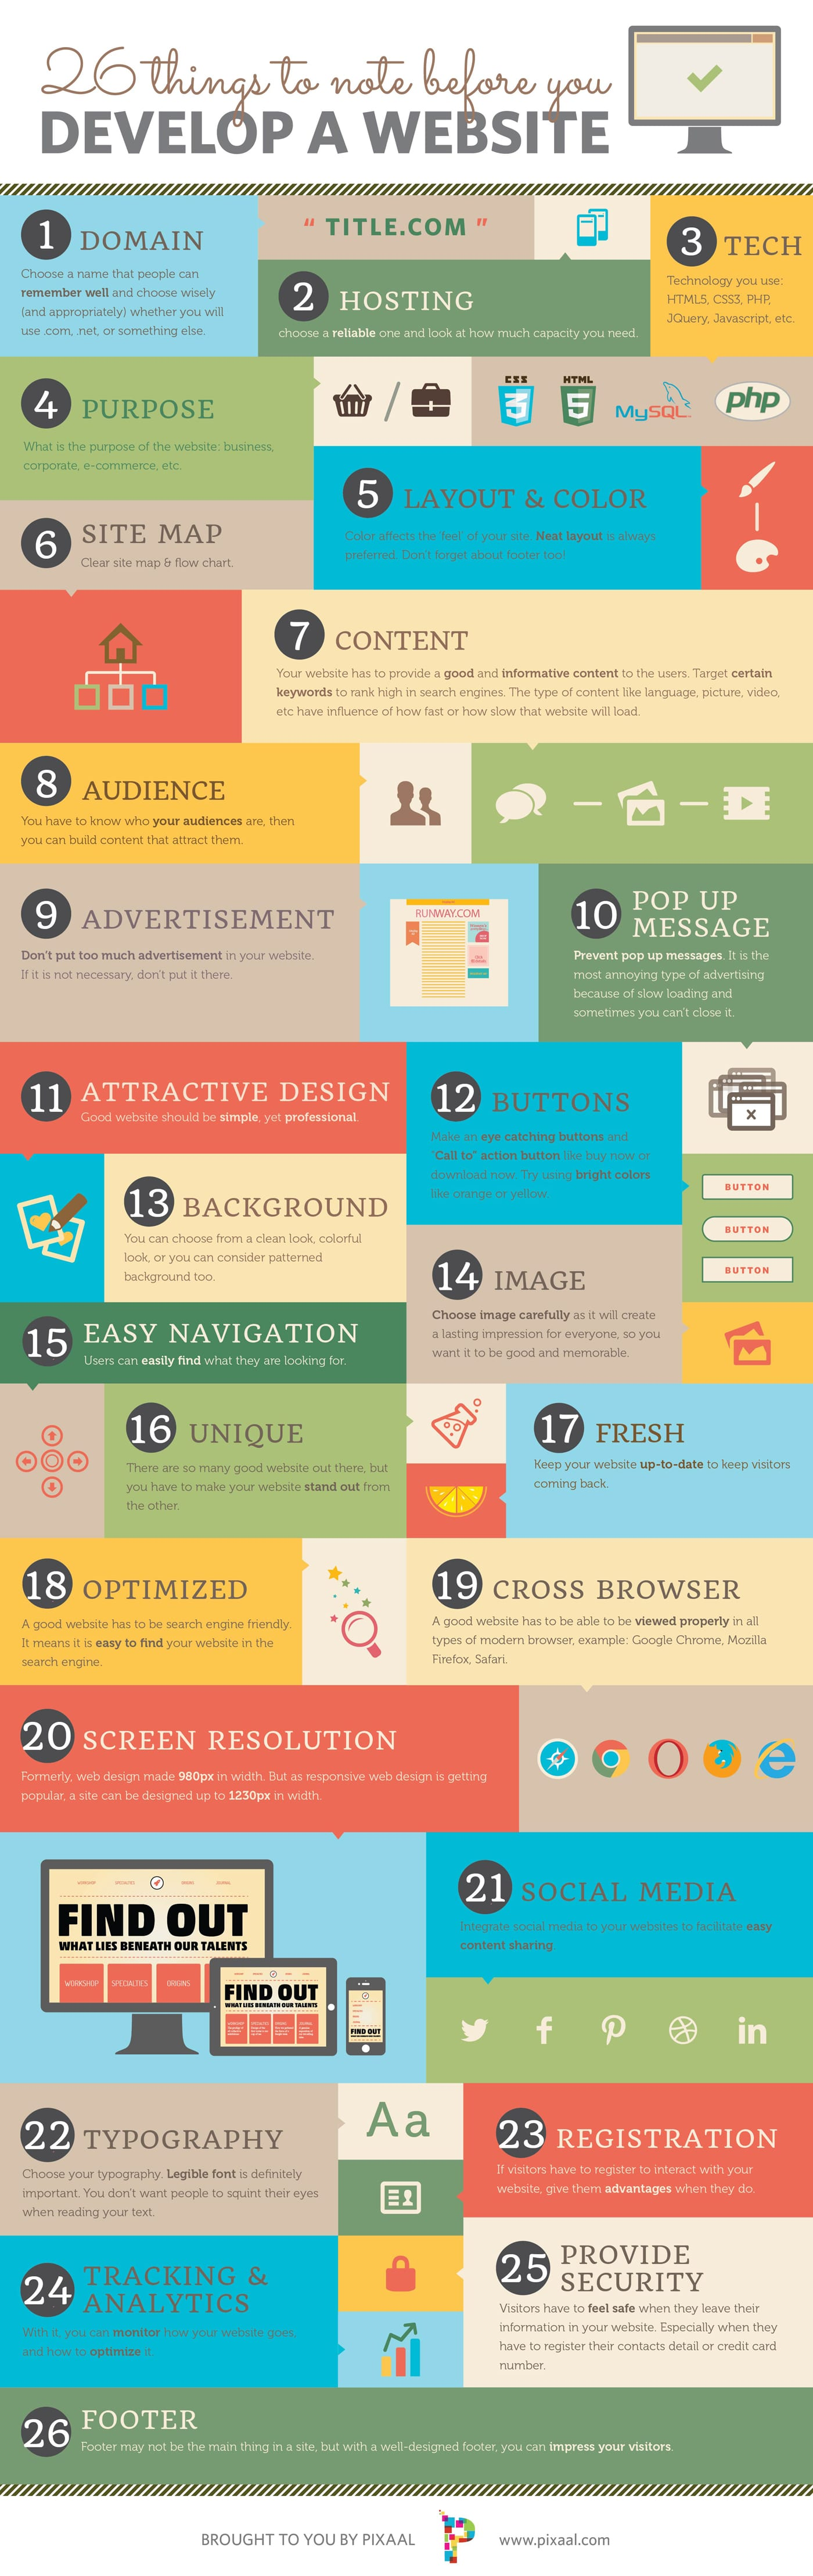 26 Things To Consider Before Developing Your Website [Infographic]